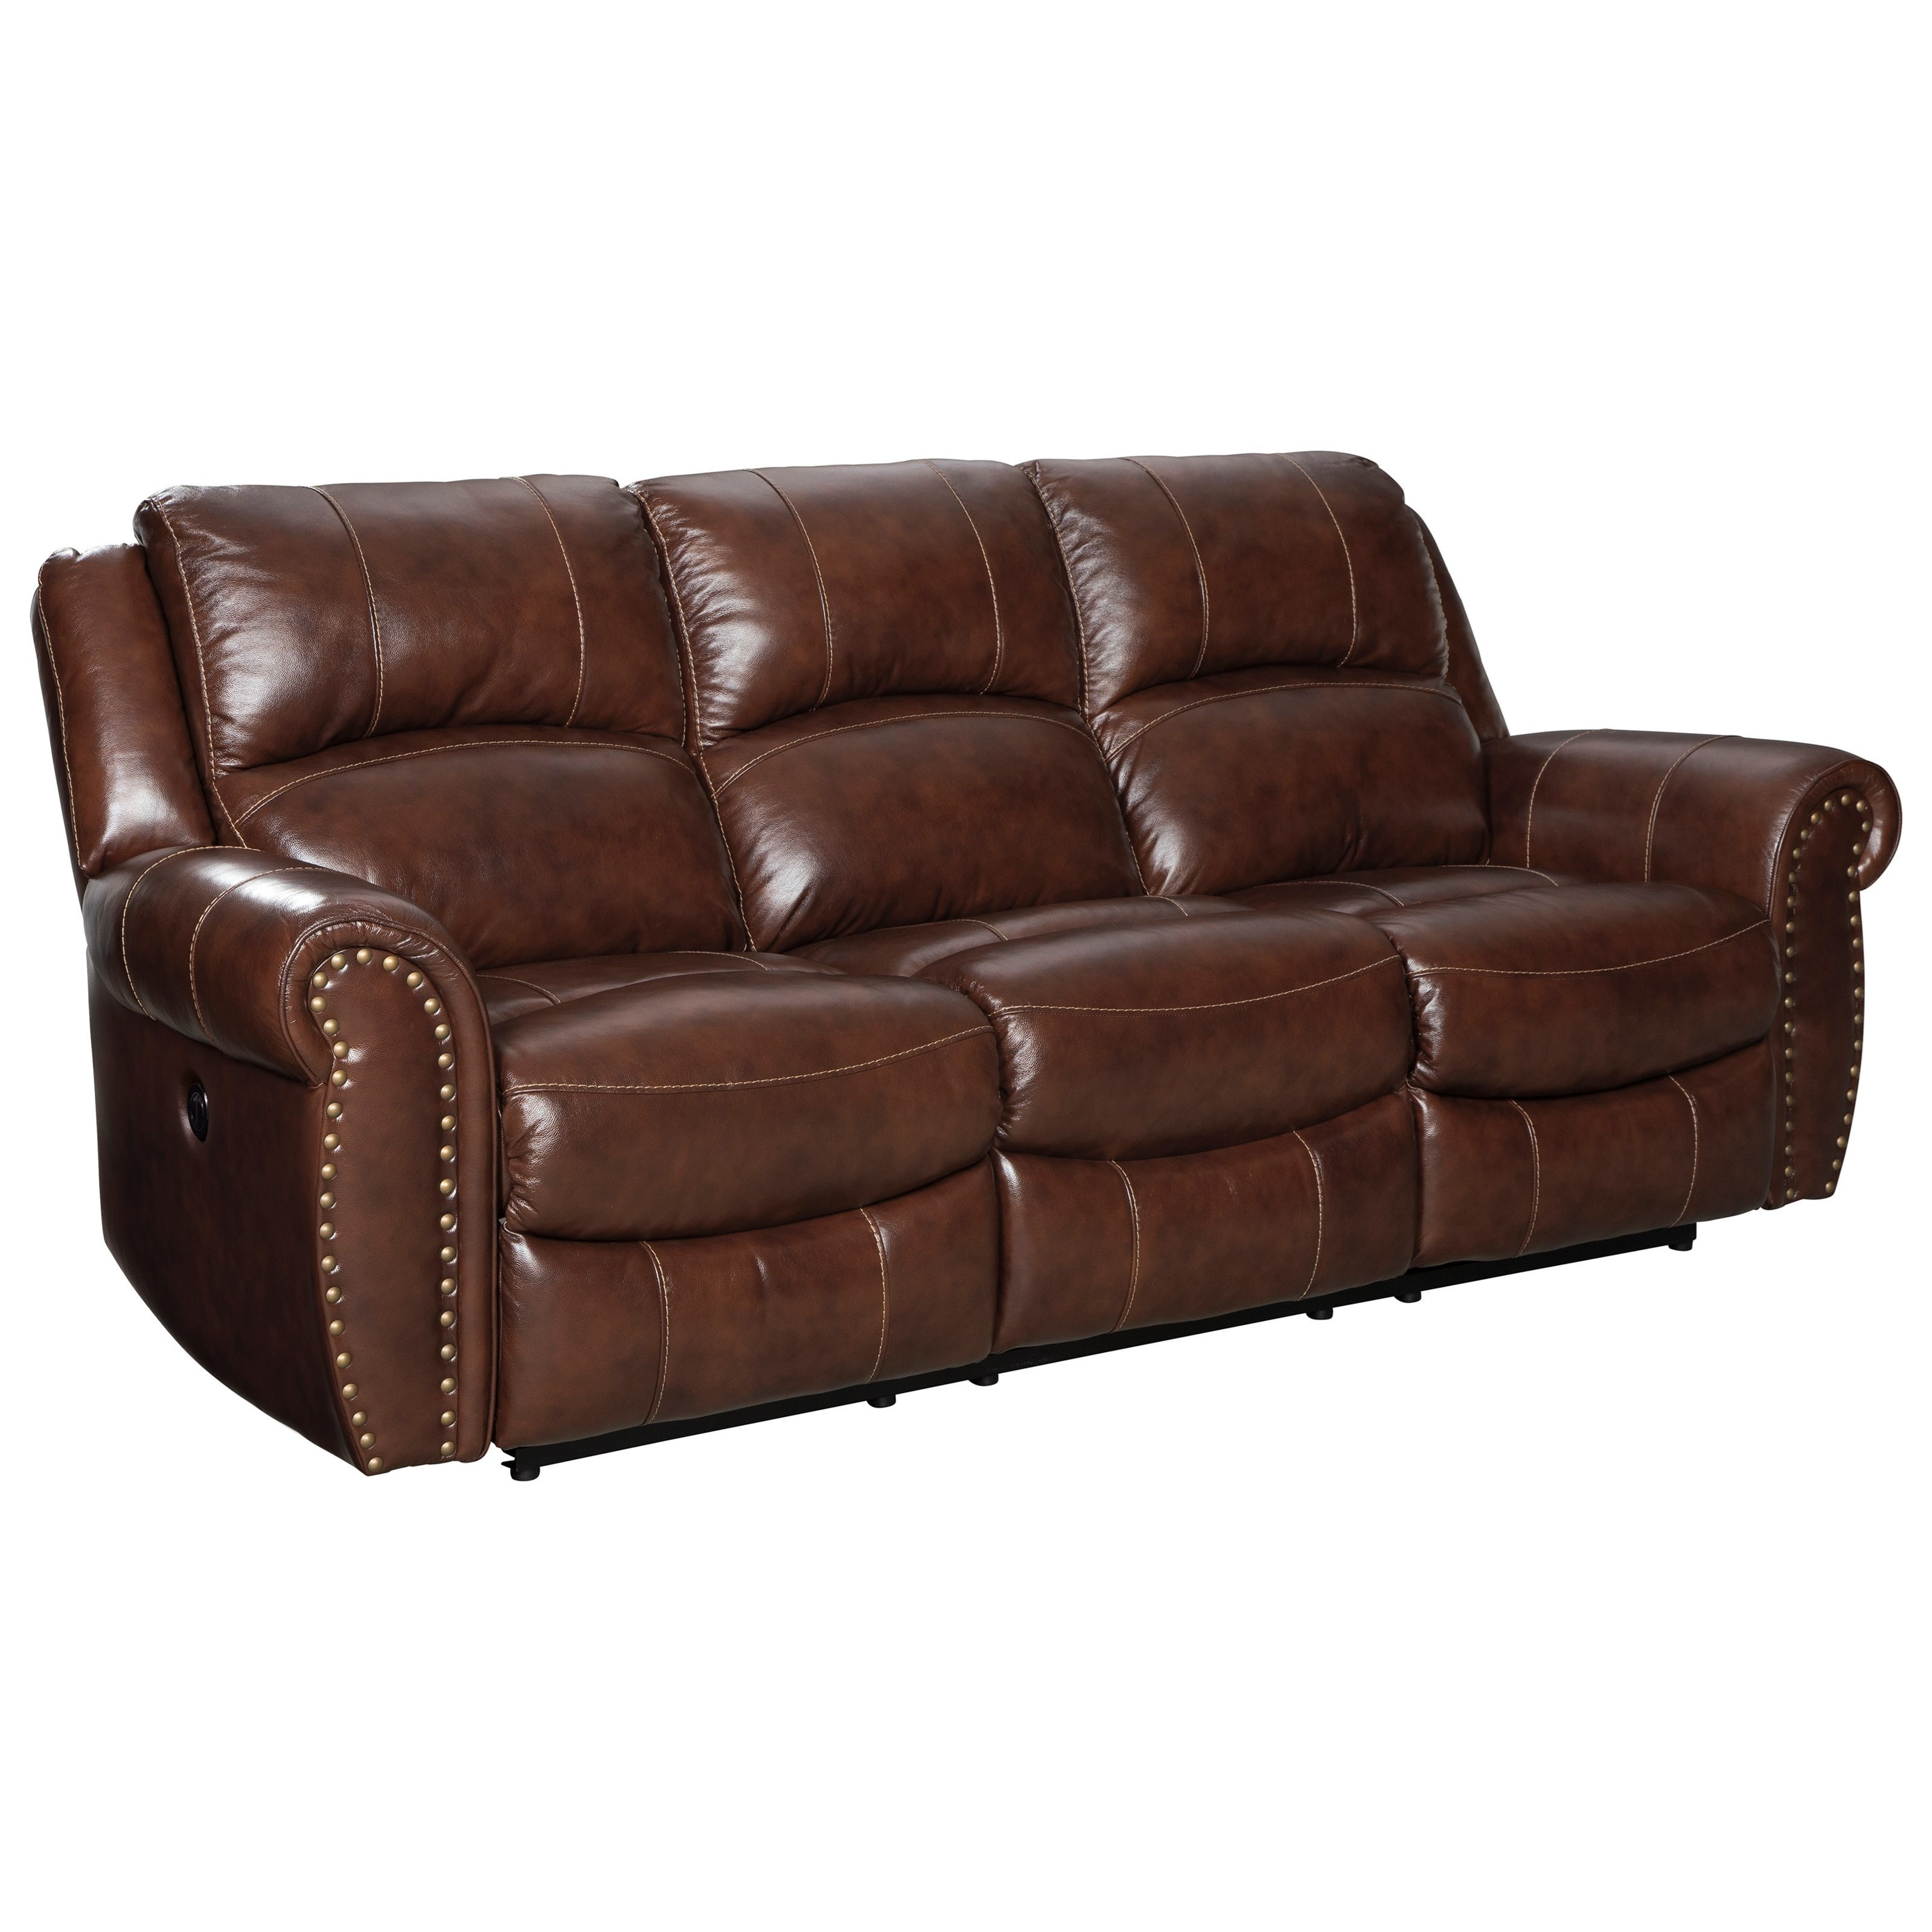 Picture of: Signature Design By Ashley Bingen Traditional Reclining Sofa With Nailhead Trim Royal Furniture Reclining Sofas